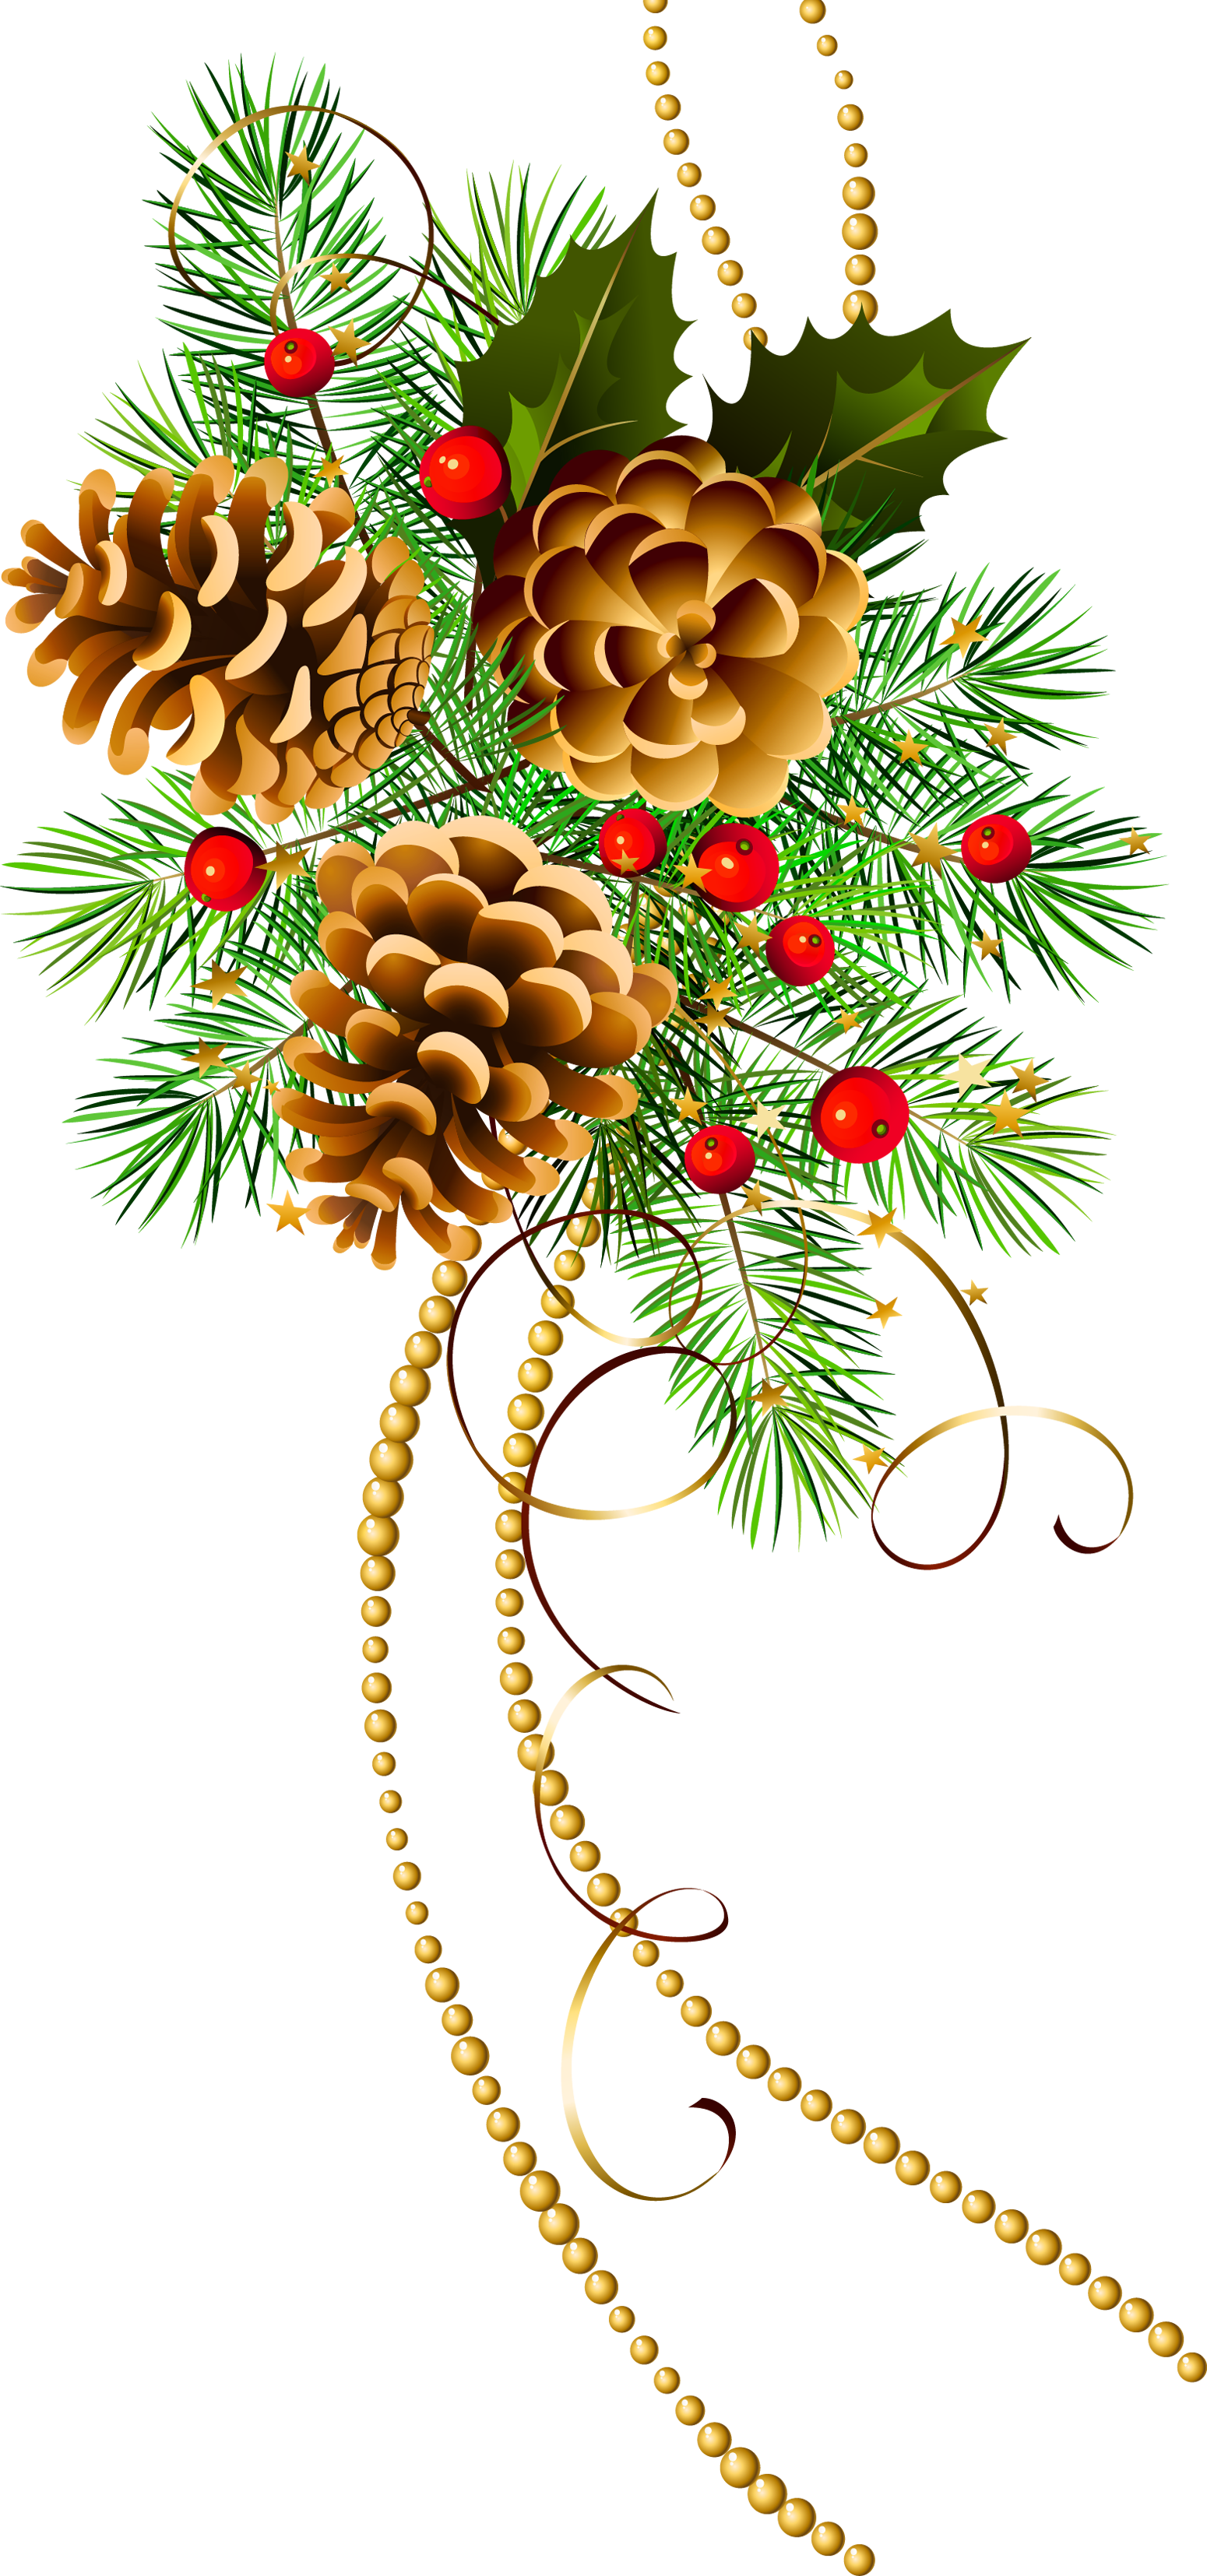 Pine tree branch clipart clip art Three Christmas Cones with Pine Branch Clipart | Gallery ... clip art